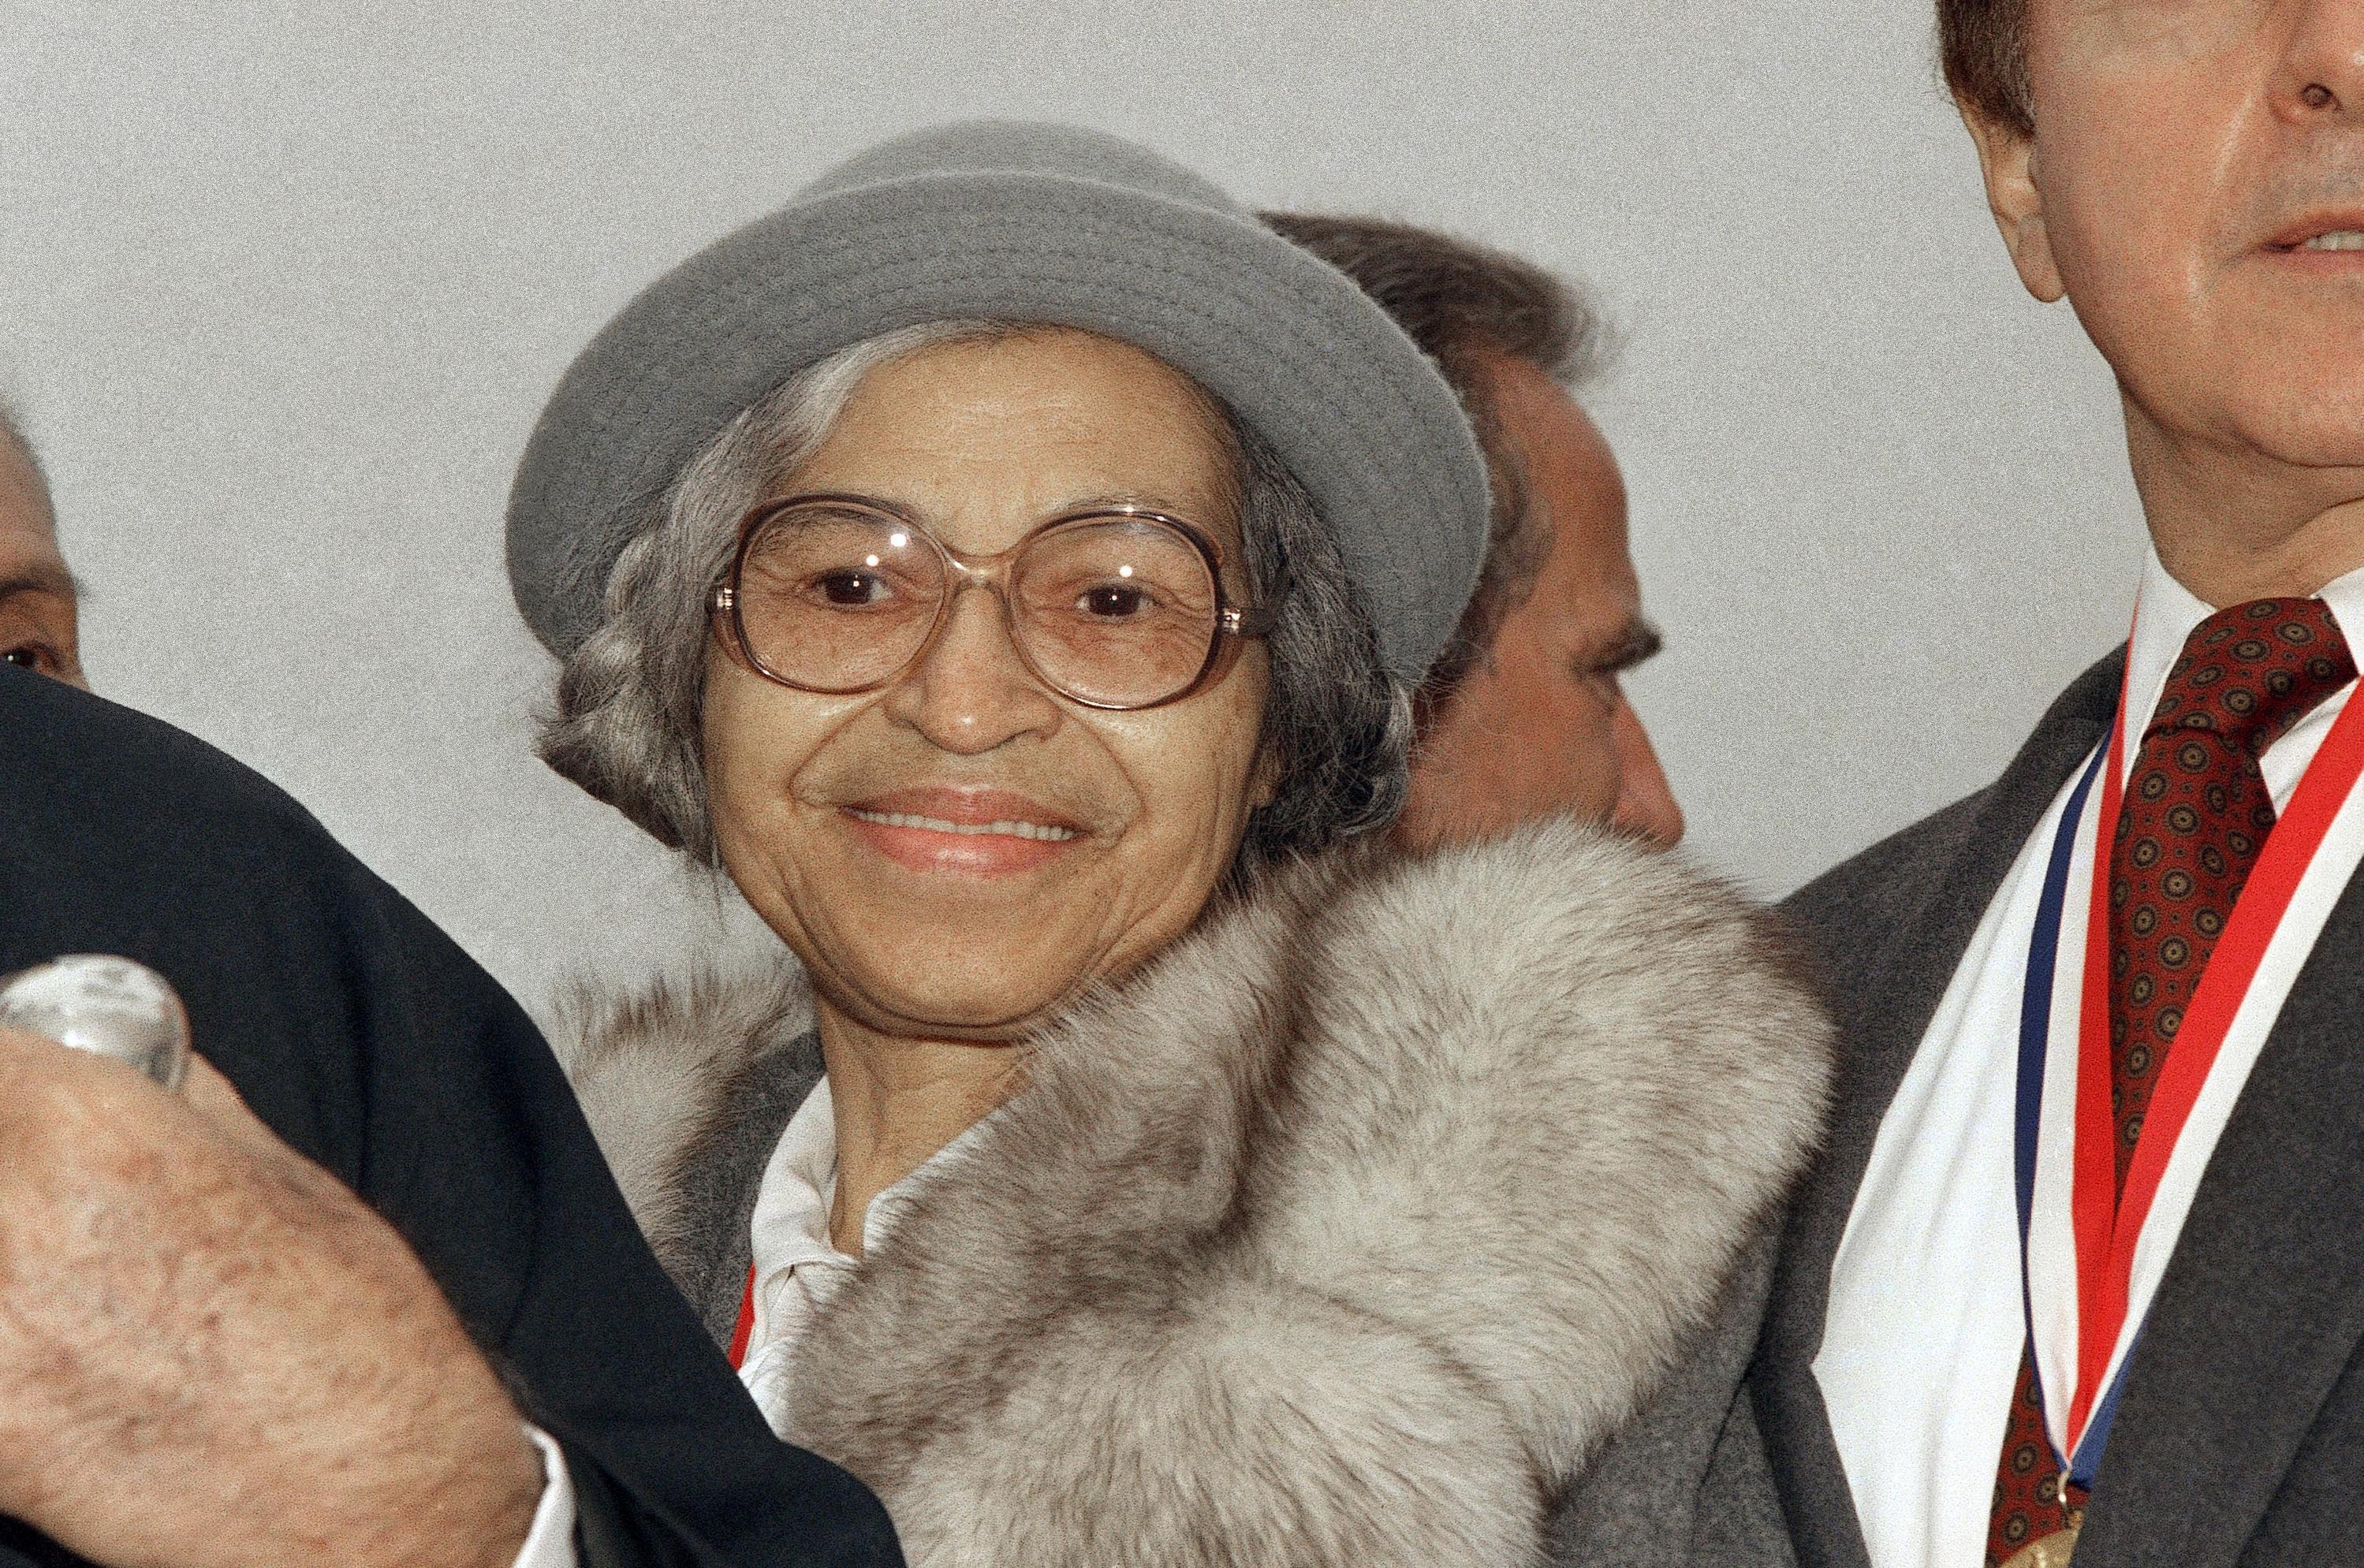 bad rosa parks essay reignite ire over unc cheating scandal bad rosa parks essay reignite ire over unc cheating scandal washington times